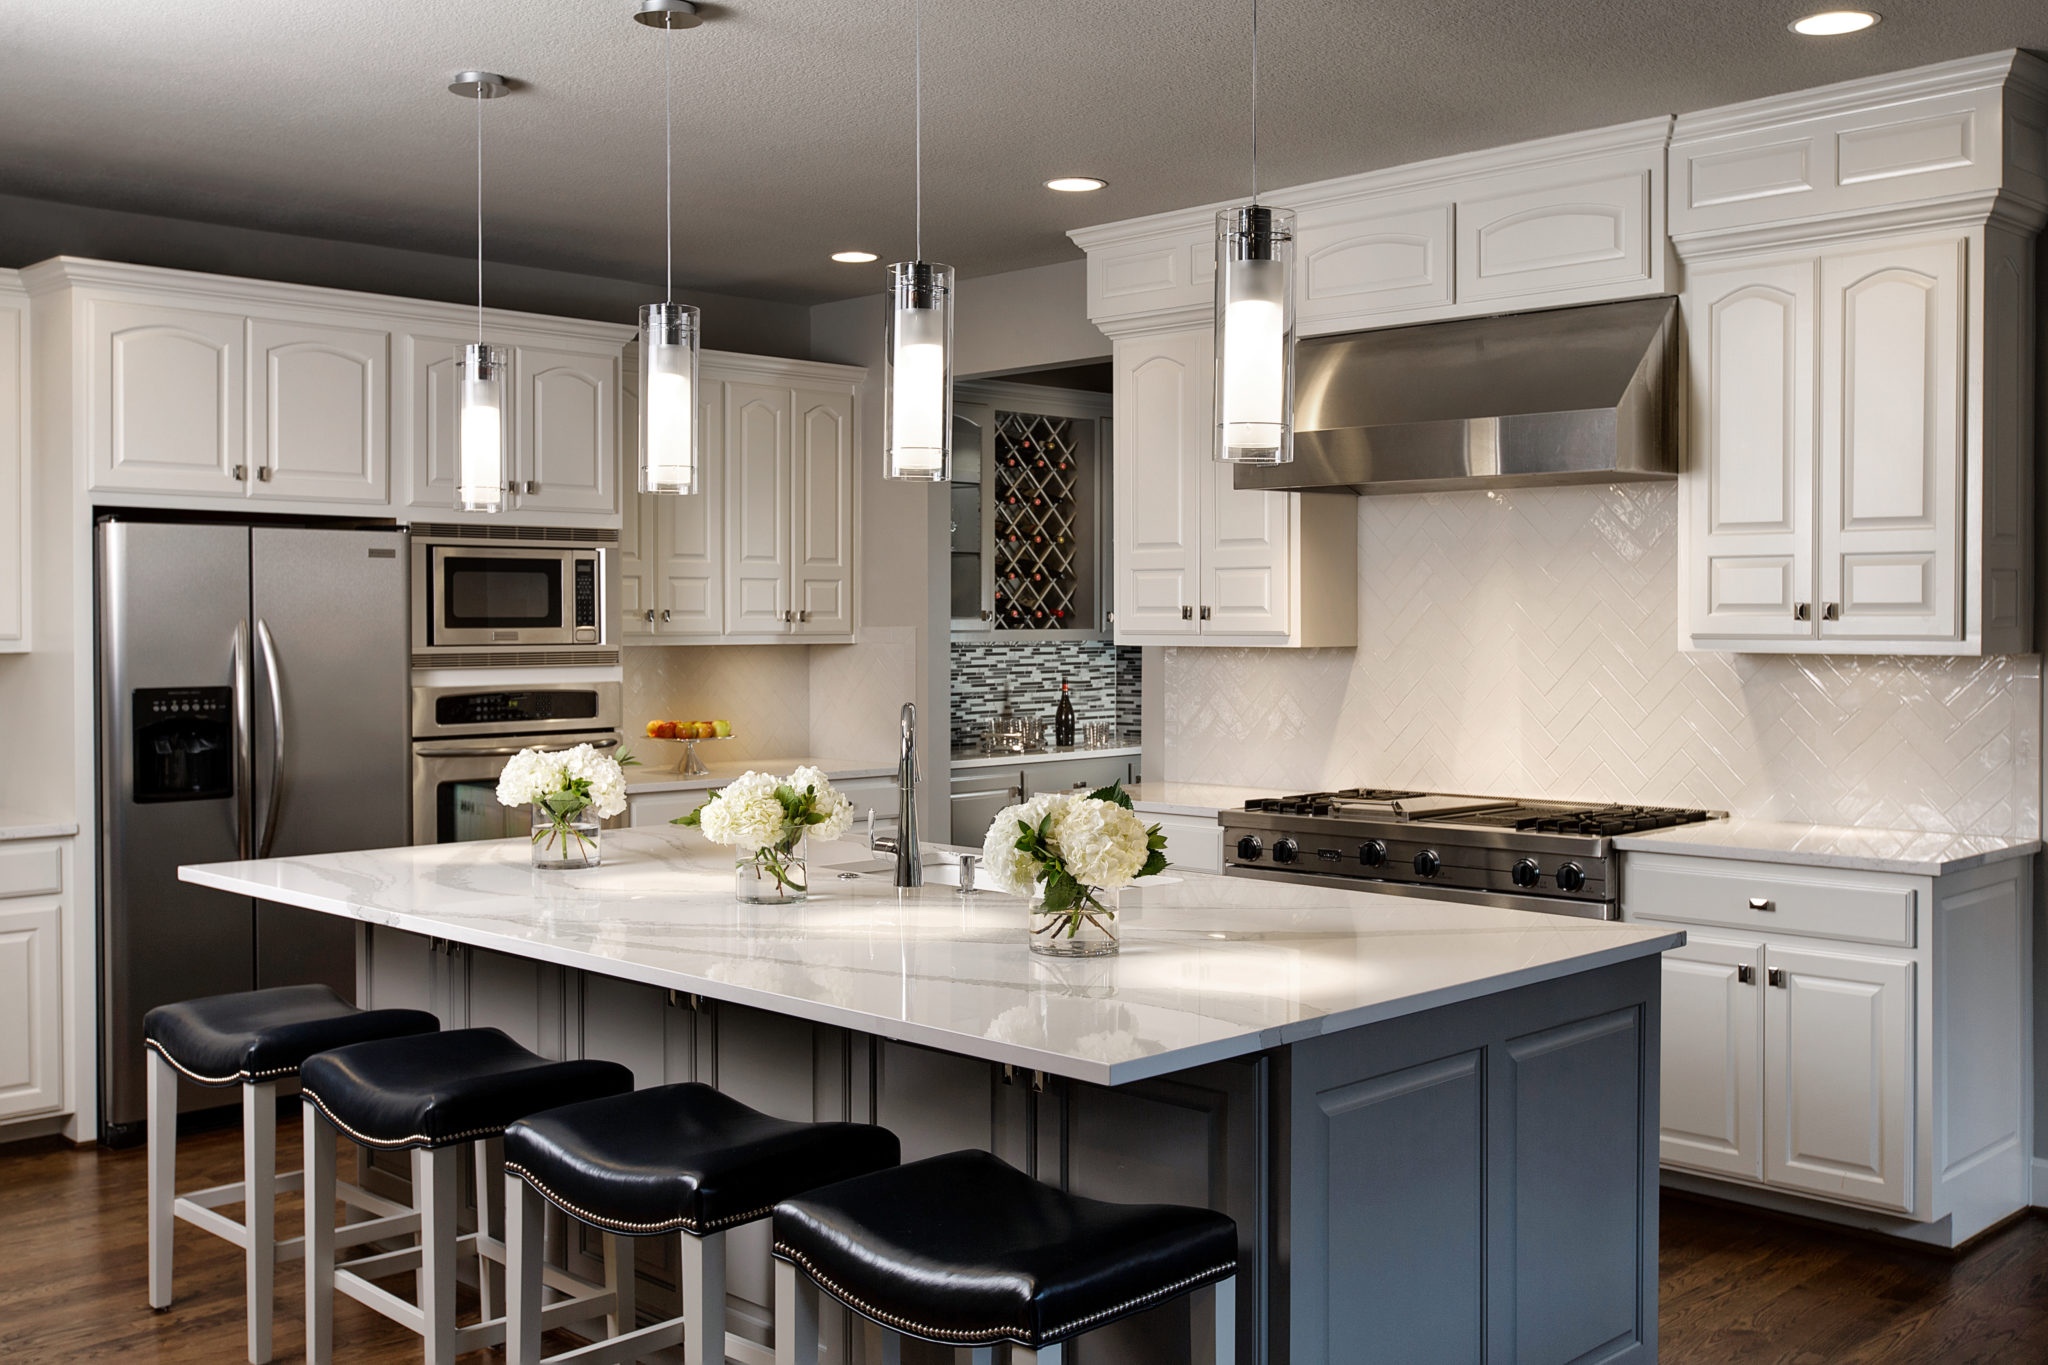 Kitchen Connection Reviews Year In Review Our Favorite Interior Design Projects Of